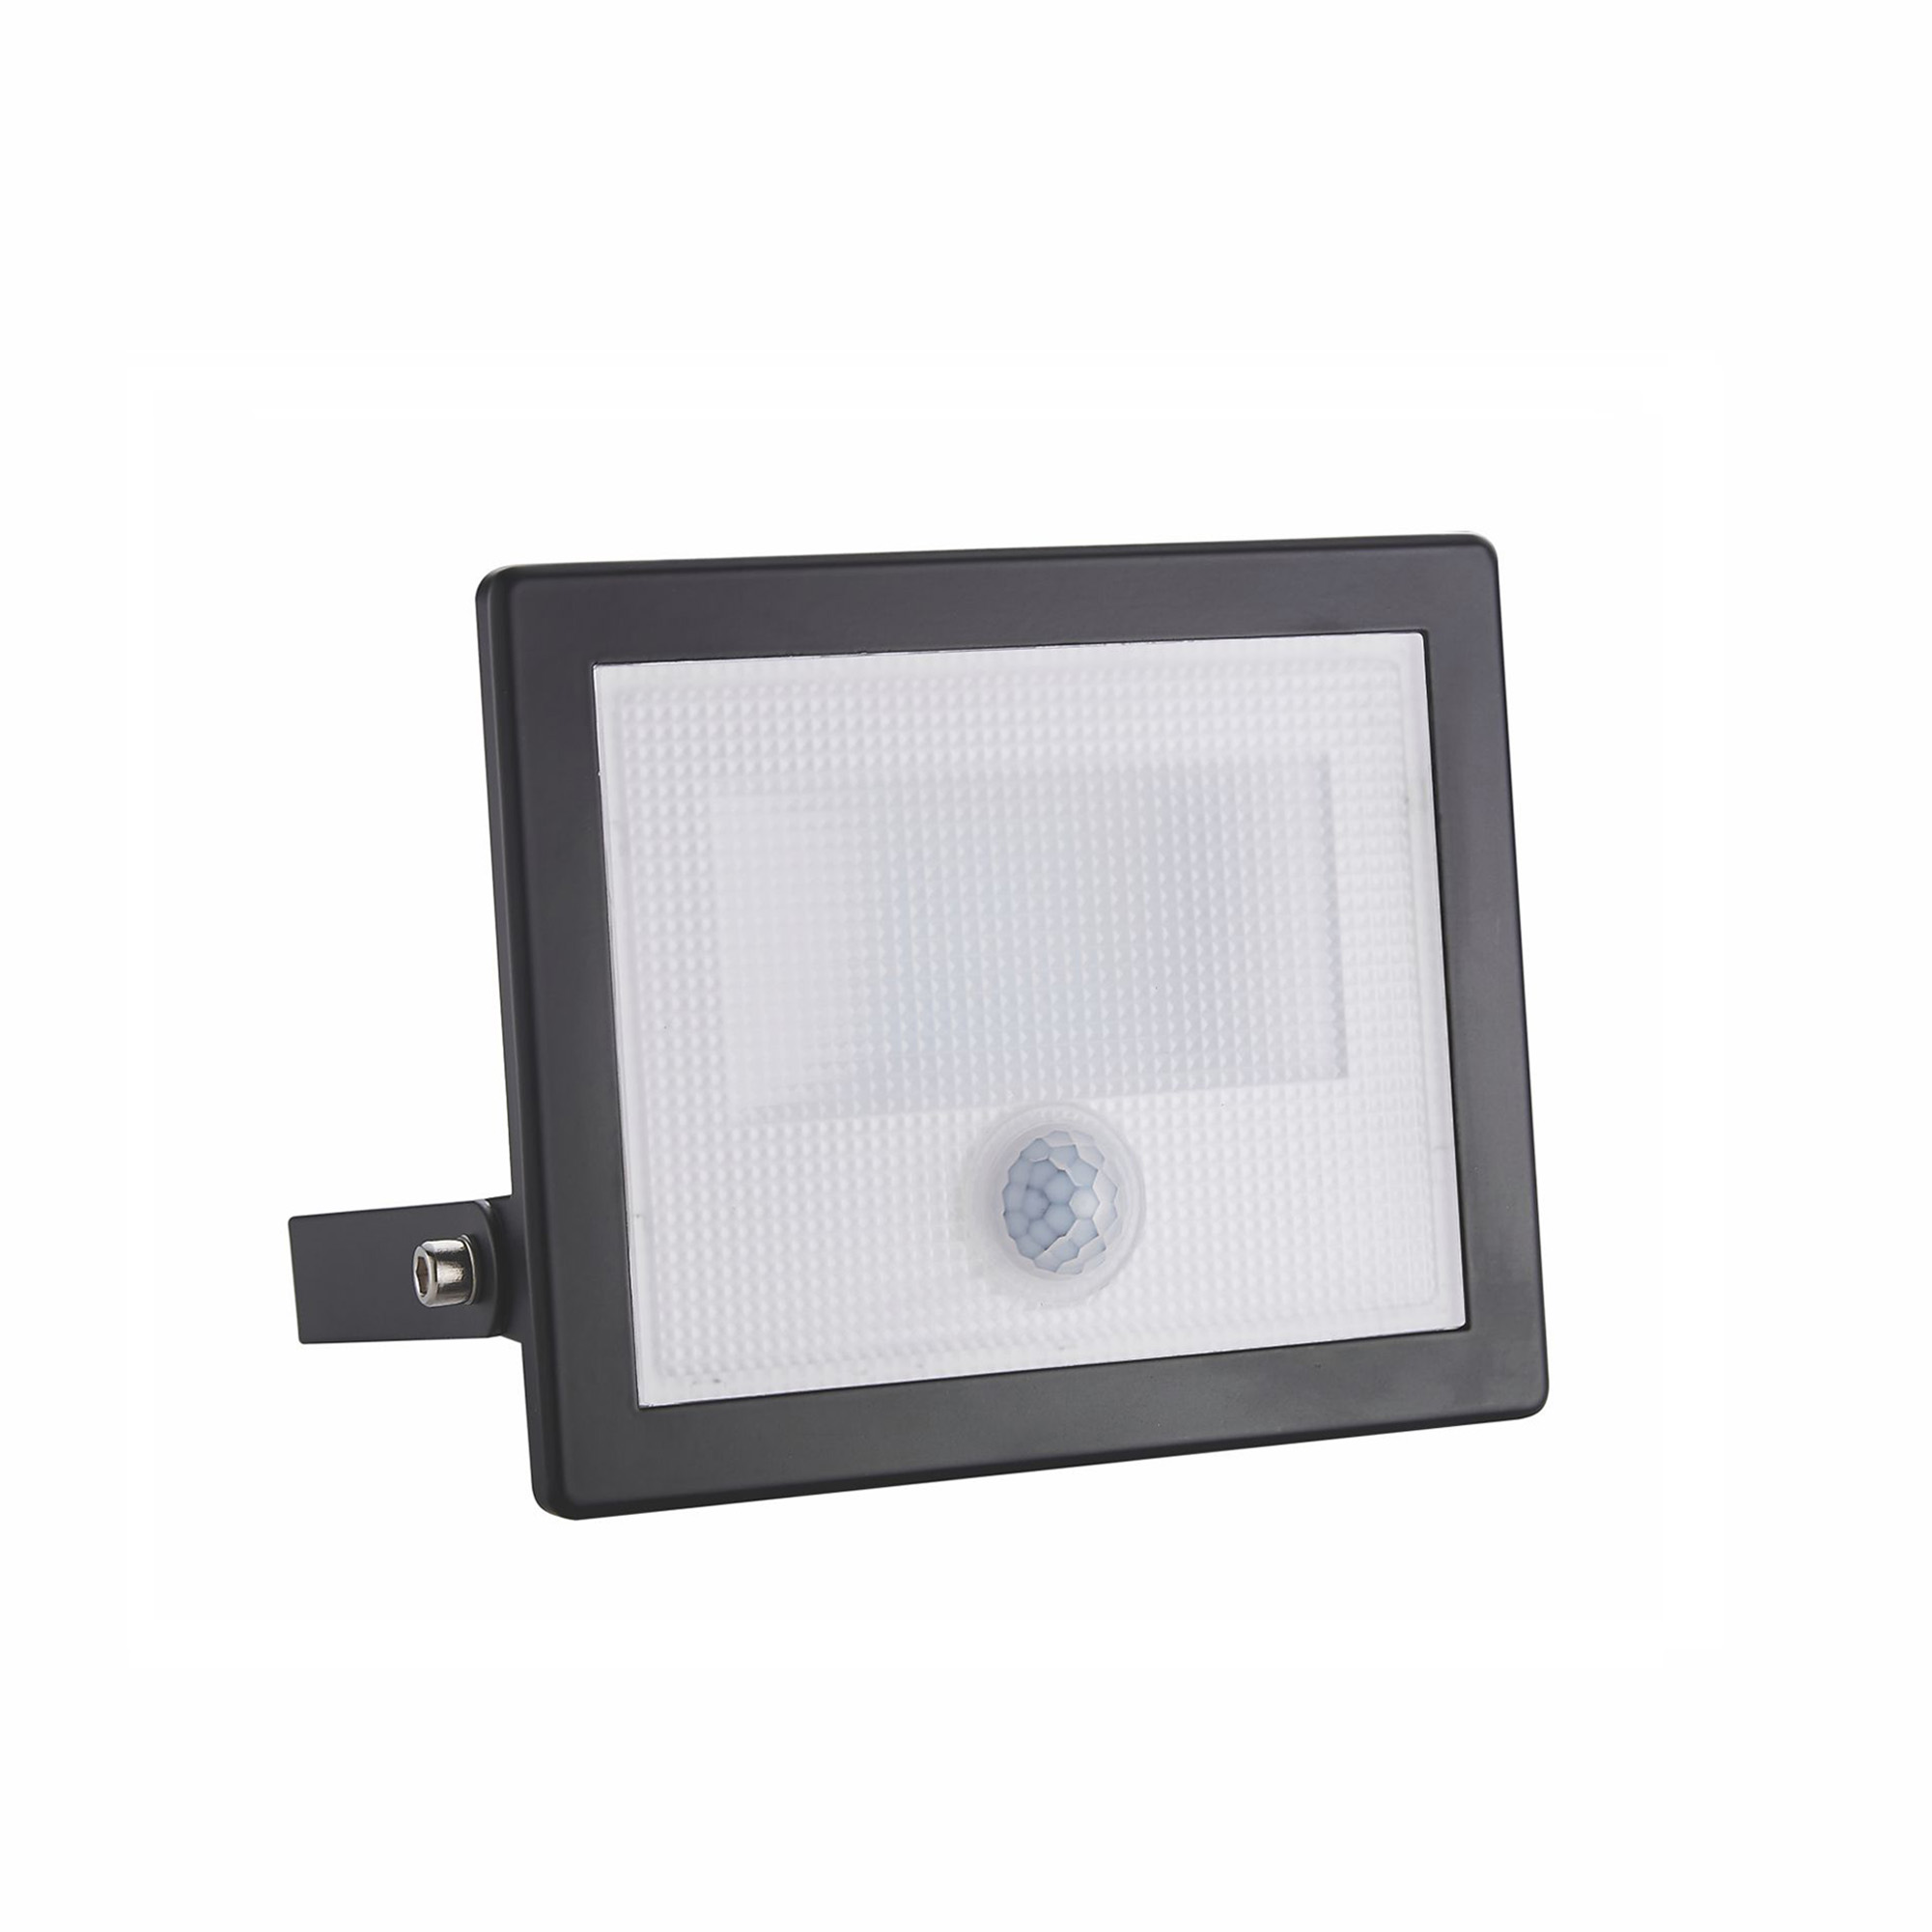 LED spotlight 30W super slim with motion sensor twilight Black exterior